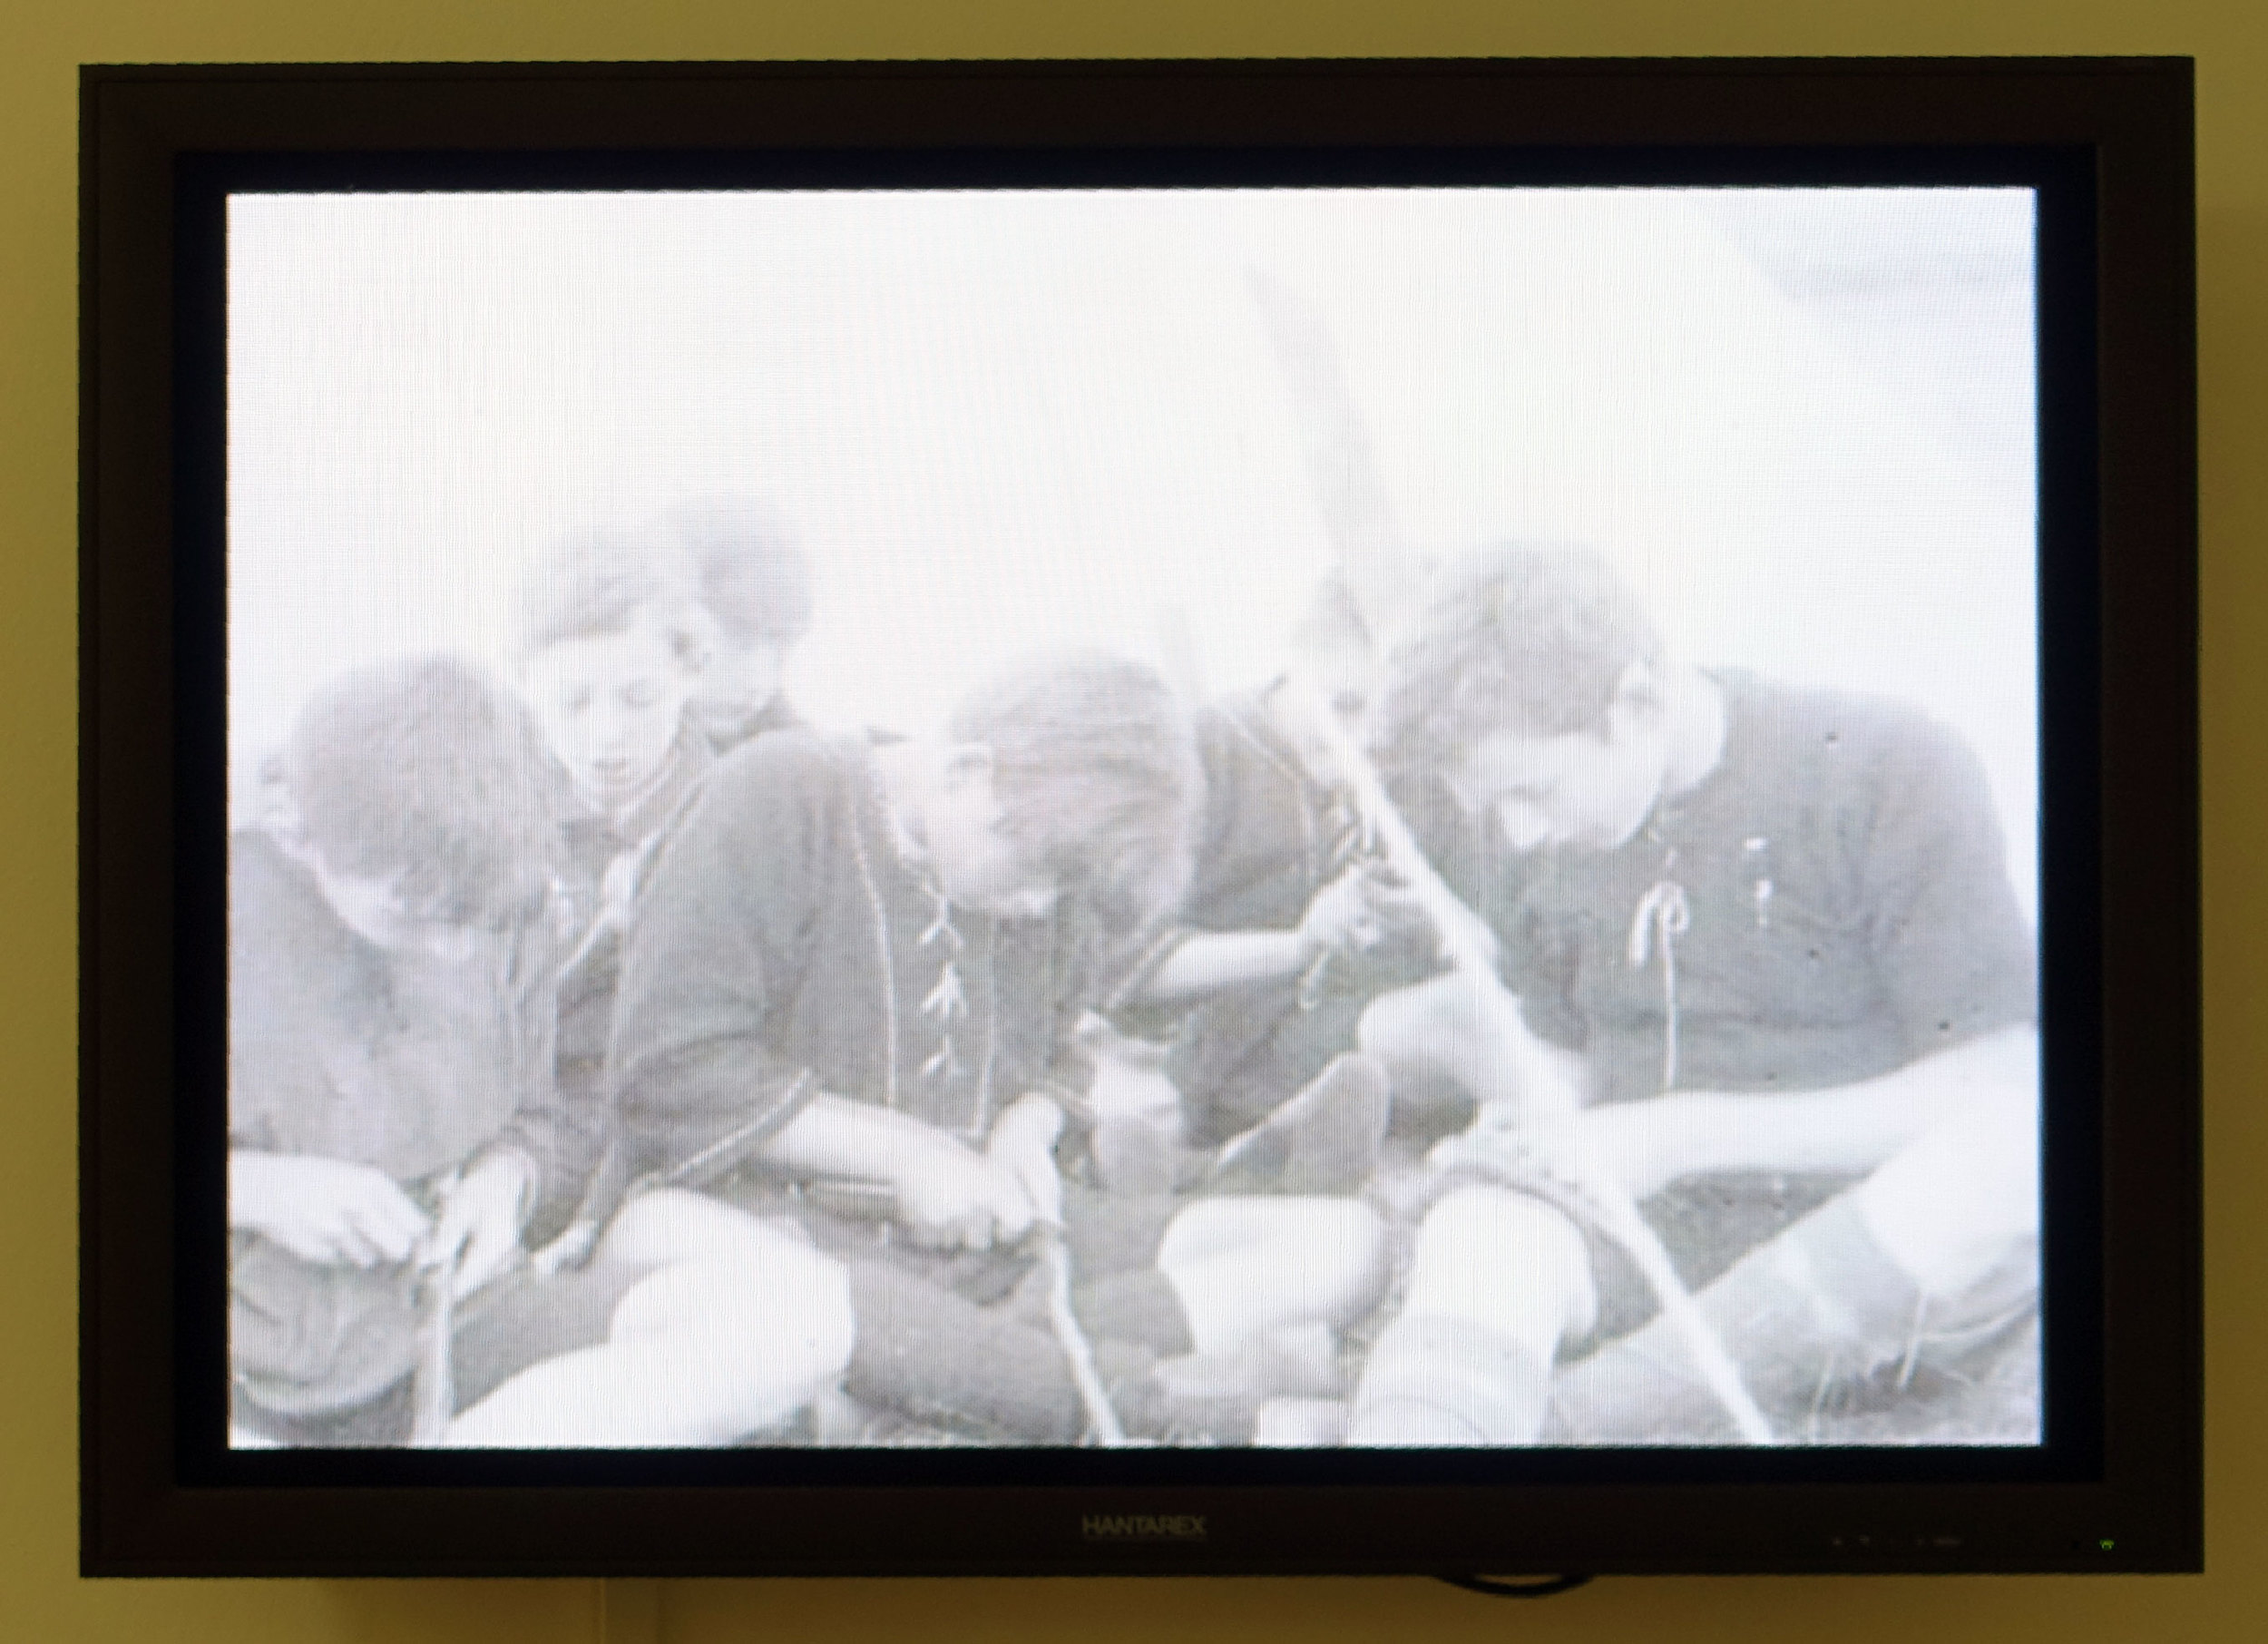 a short film showing the Kibbo Kift Kindred learning the ways of the land